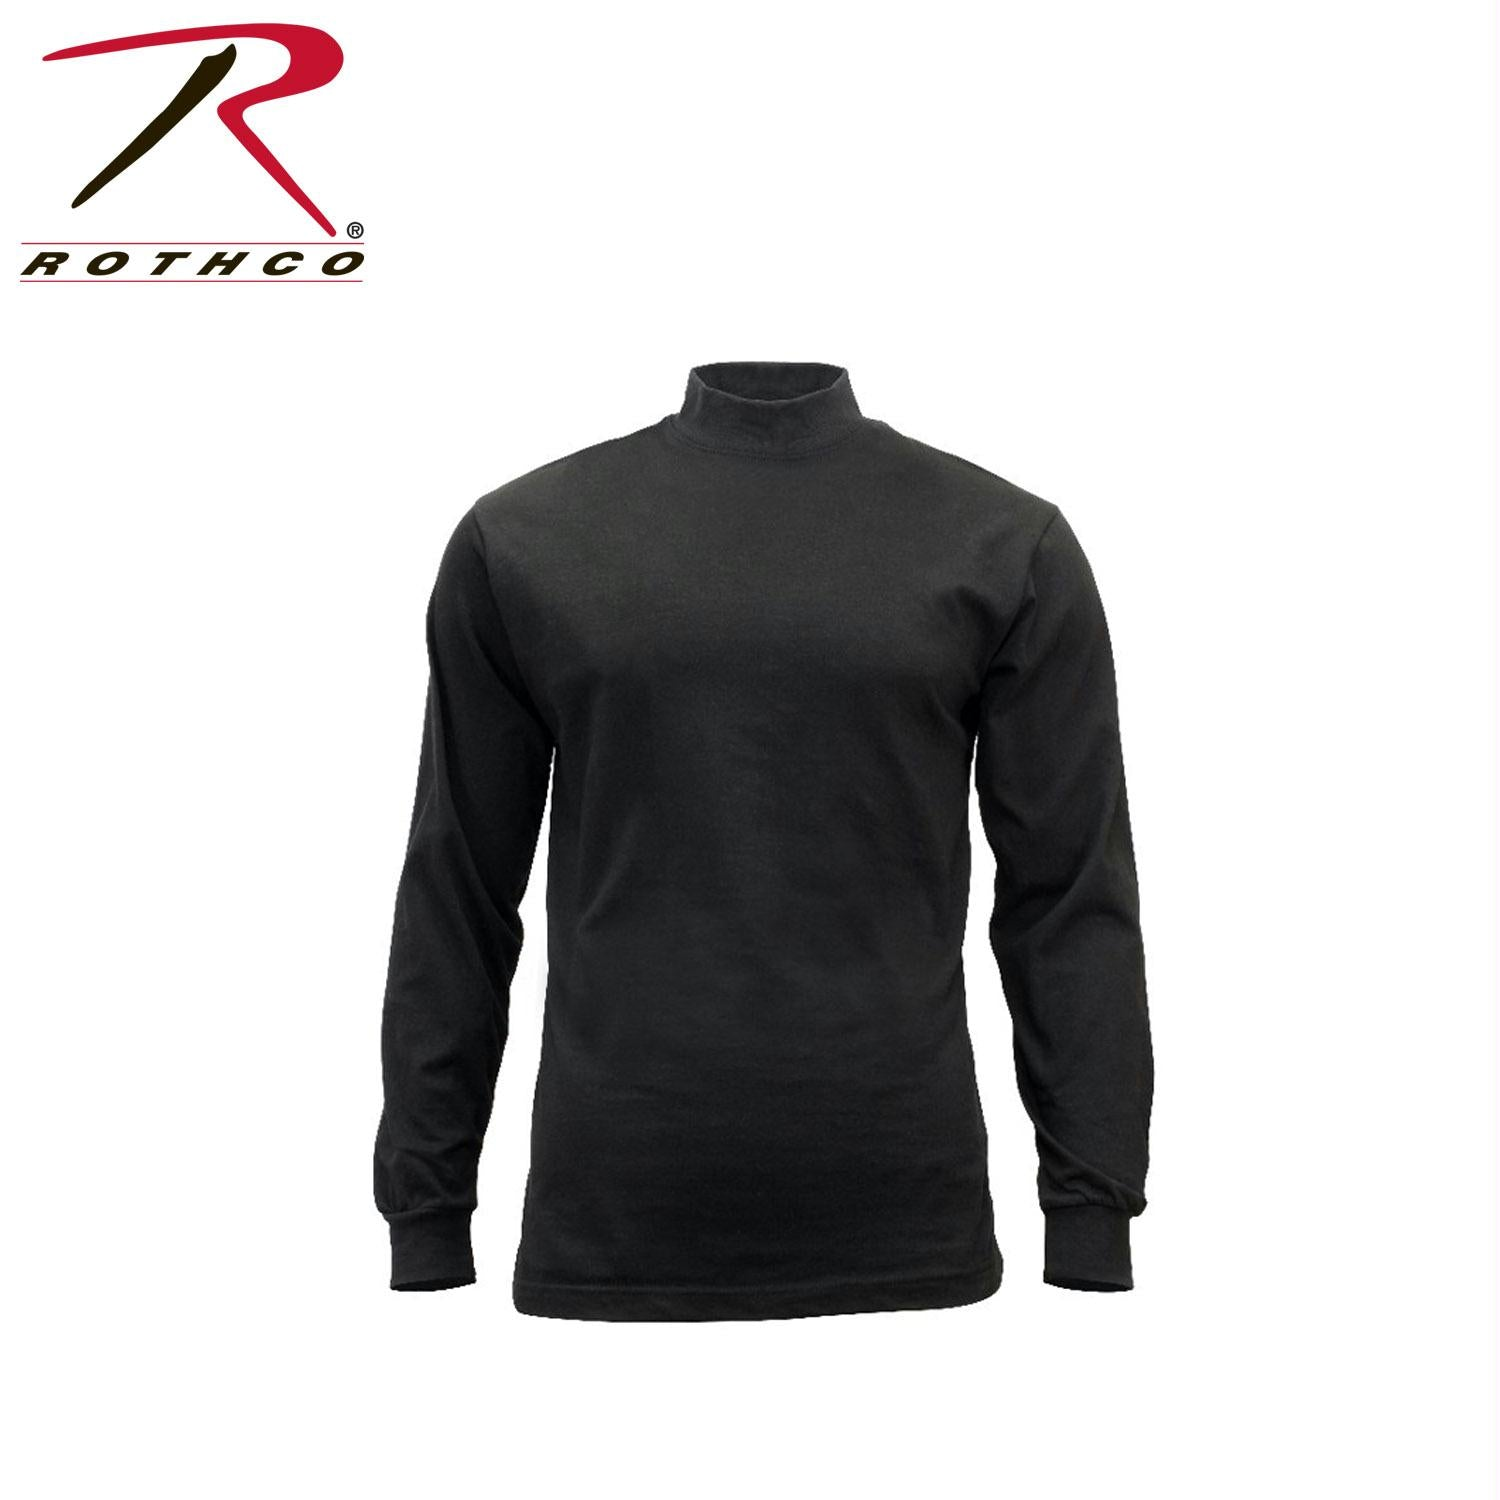 Rothco Mock Turtleneck - Black / S